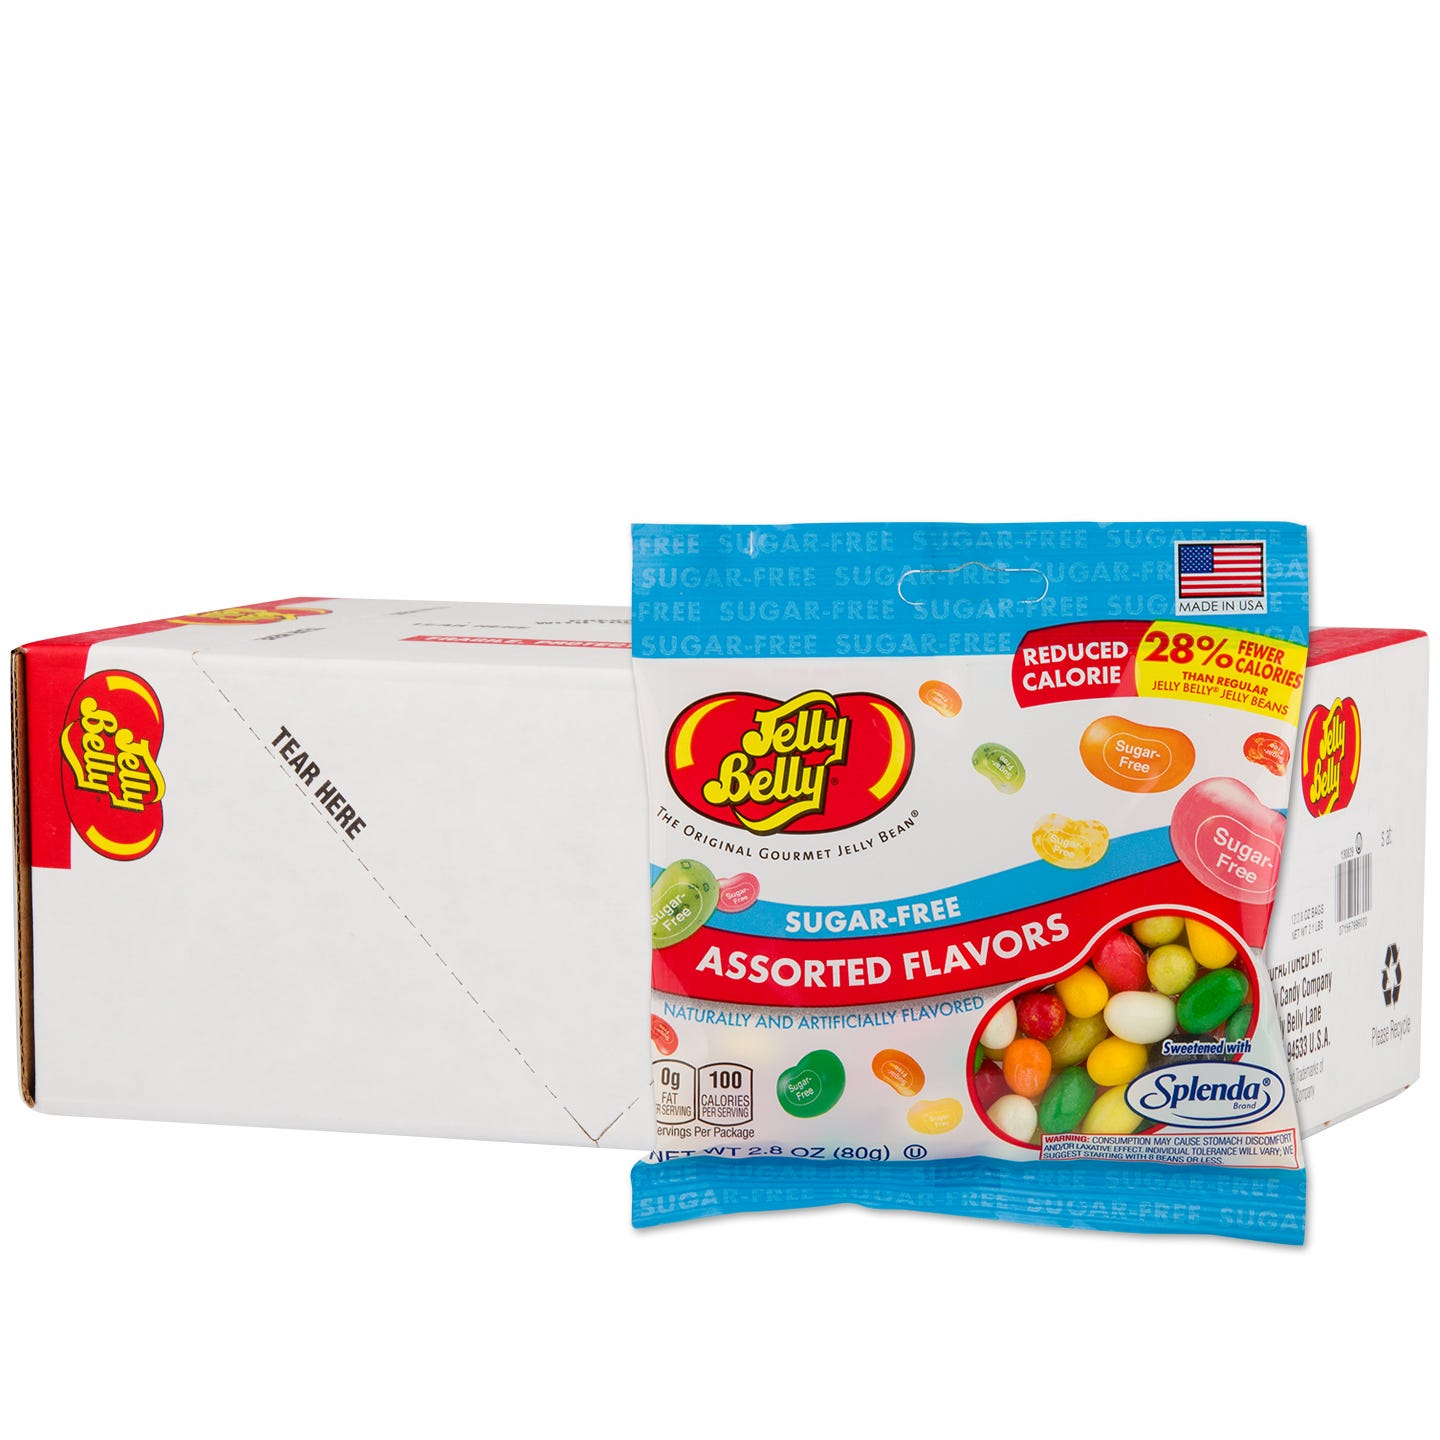 Sugar-Free Jelly Beans (12 ct) - Jelly Belly - Rapid Diet Weight Loss Products Shop